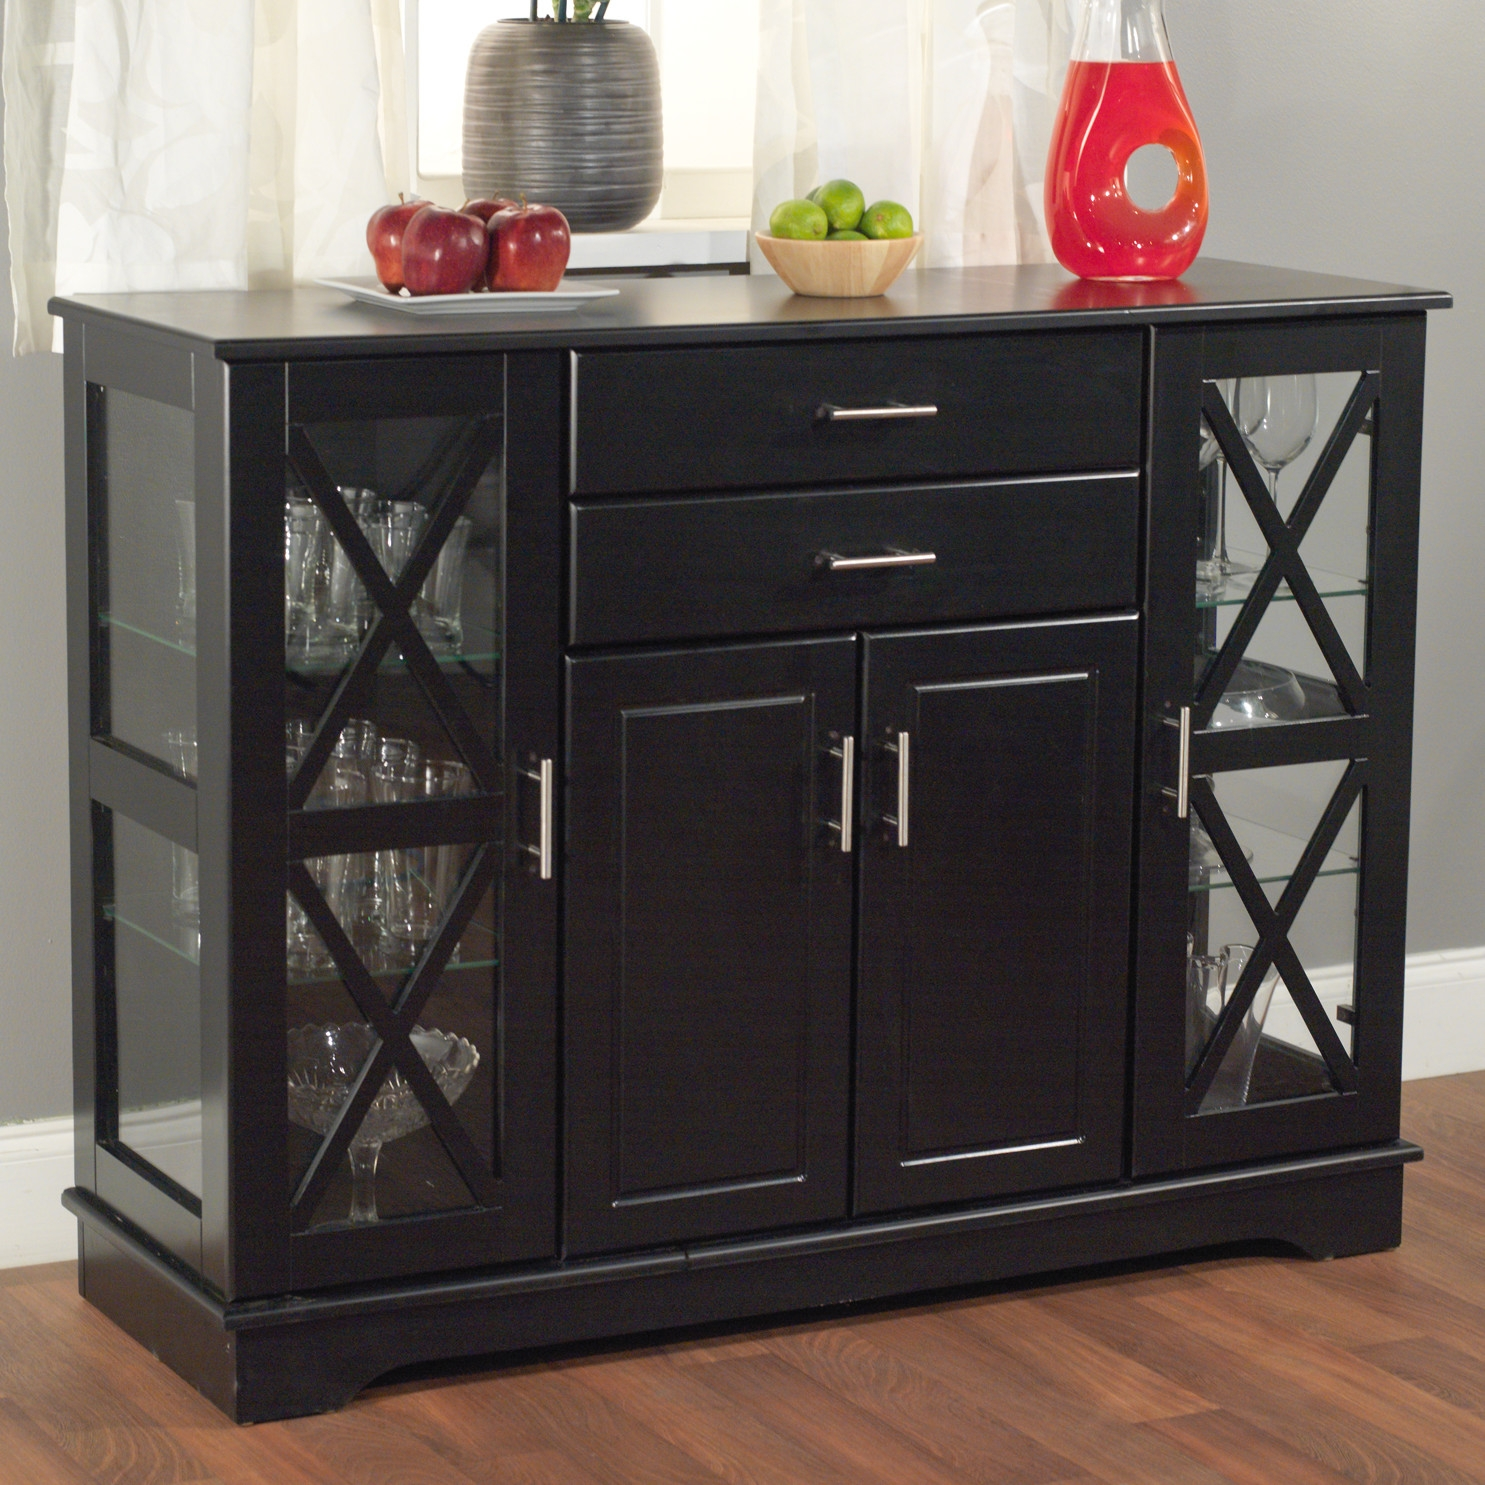 Black Wood Buffet Cabinet ~ Black wood buffet dining room sideboard with glass doors